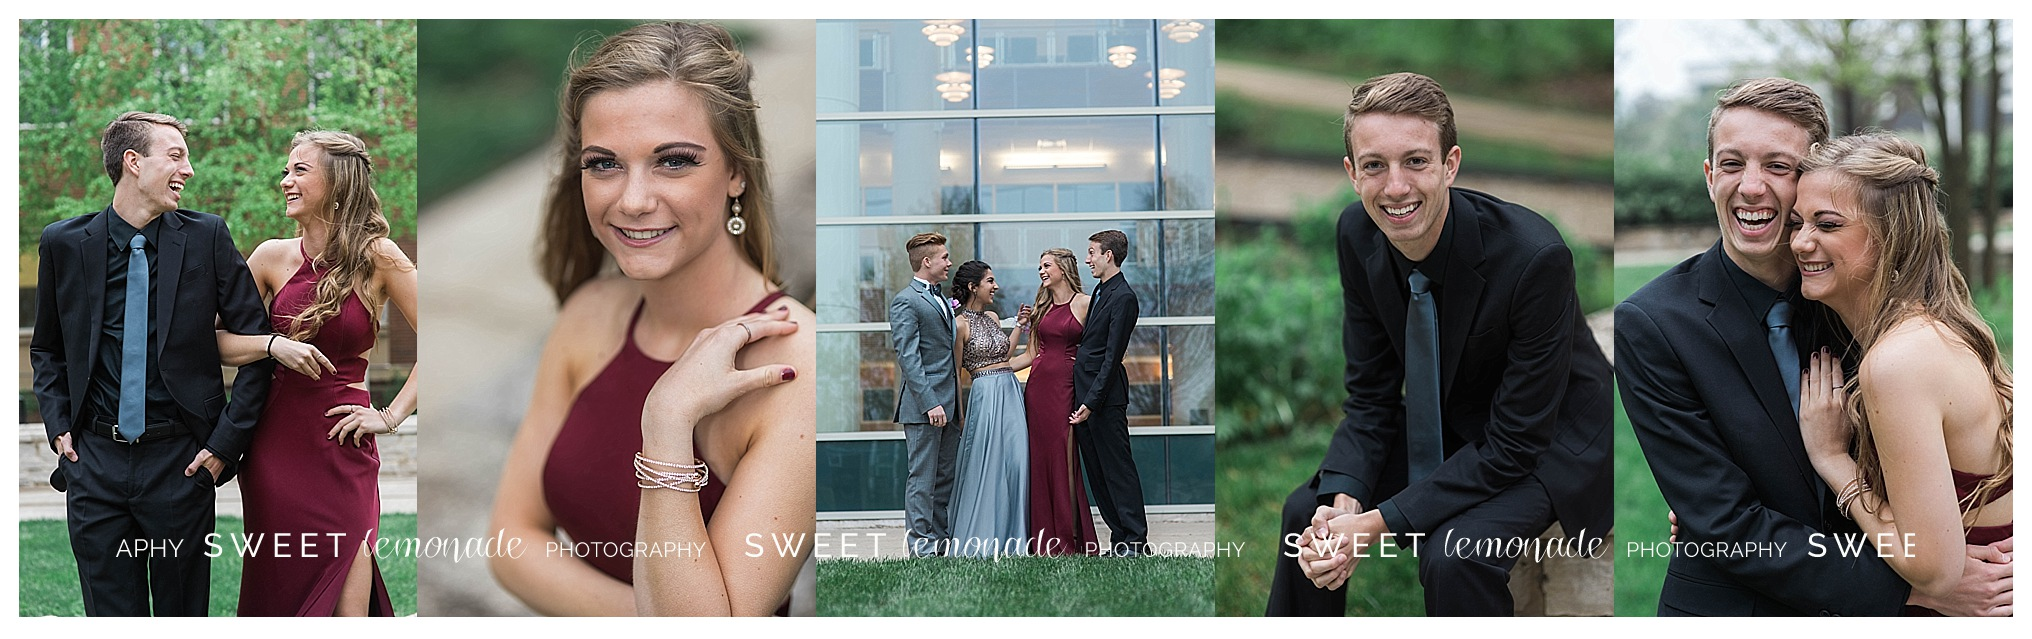 champaign-county-mahomet-illinois-senior-photographer-sweet-lemonade-photography-prom-photographs_1052.jpg